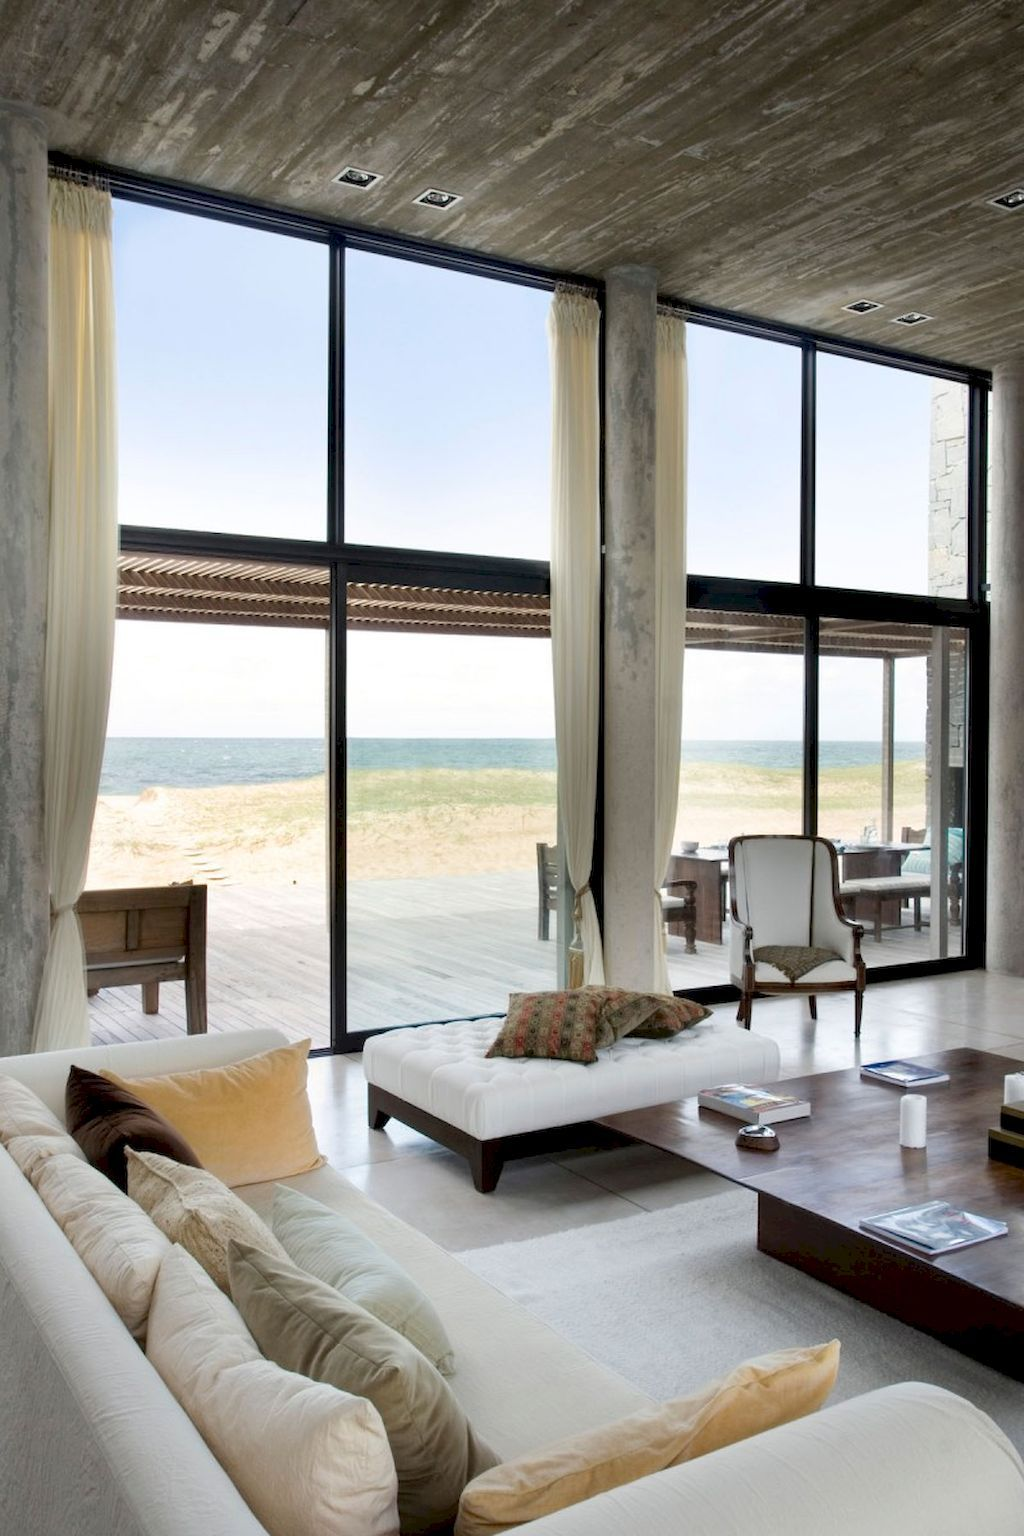 75 Cozy Coastal Style Living Room Decor Ideas With Images